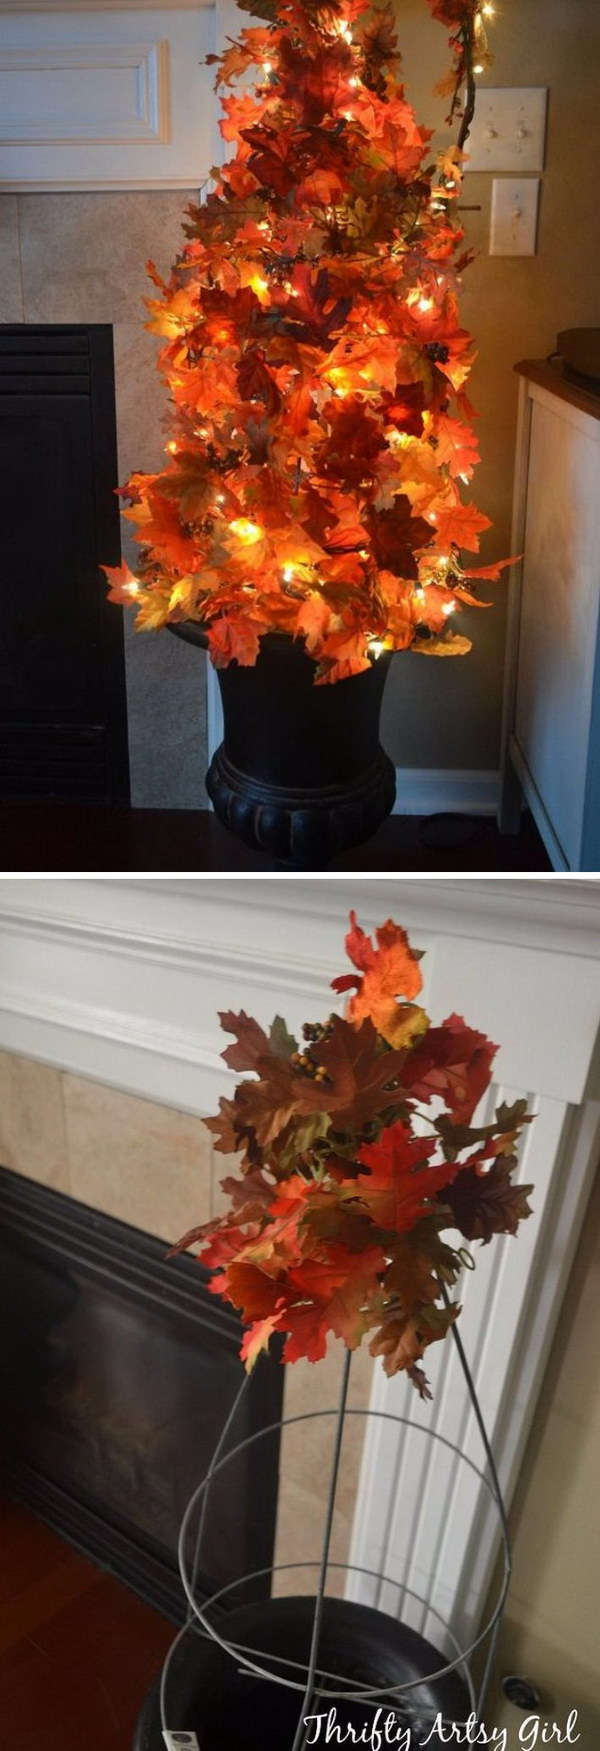 30 Cool Fall Projects for a Festive